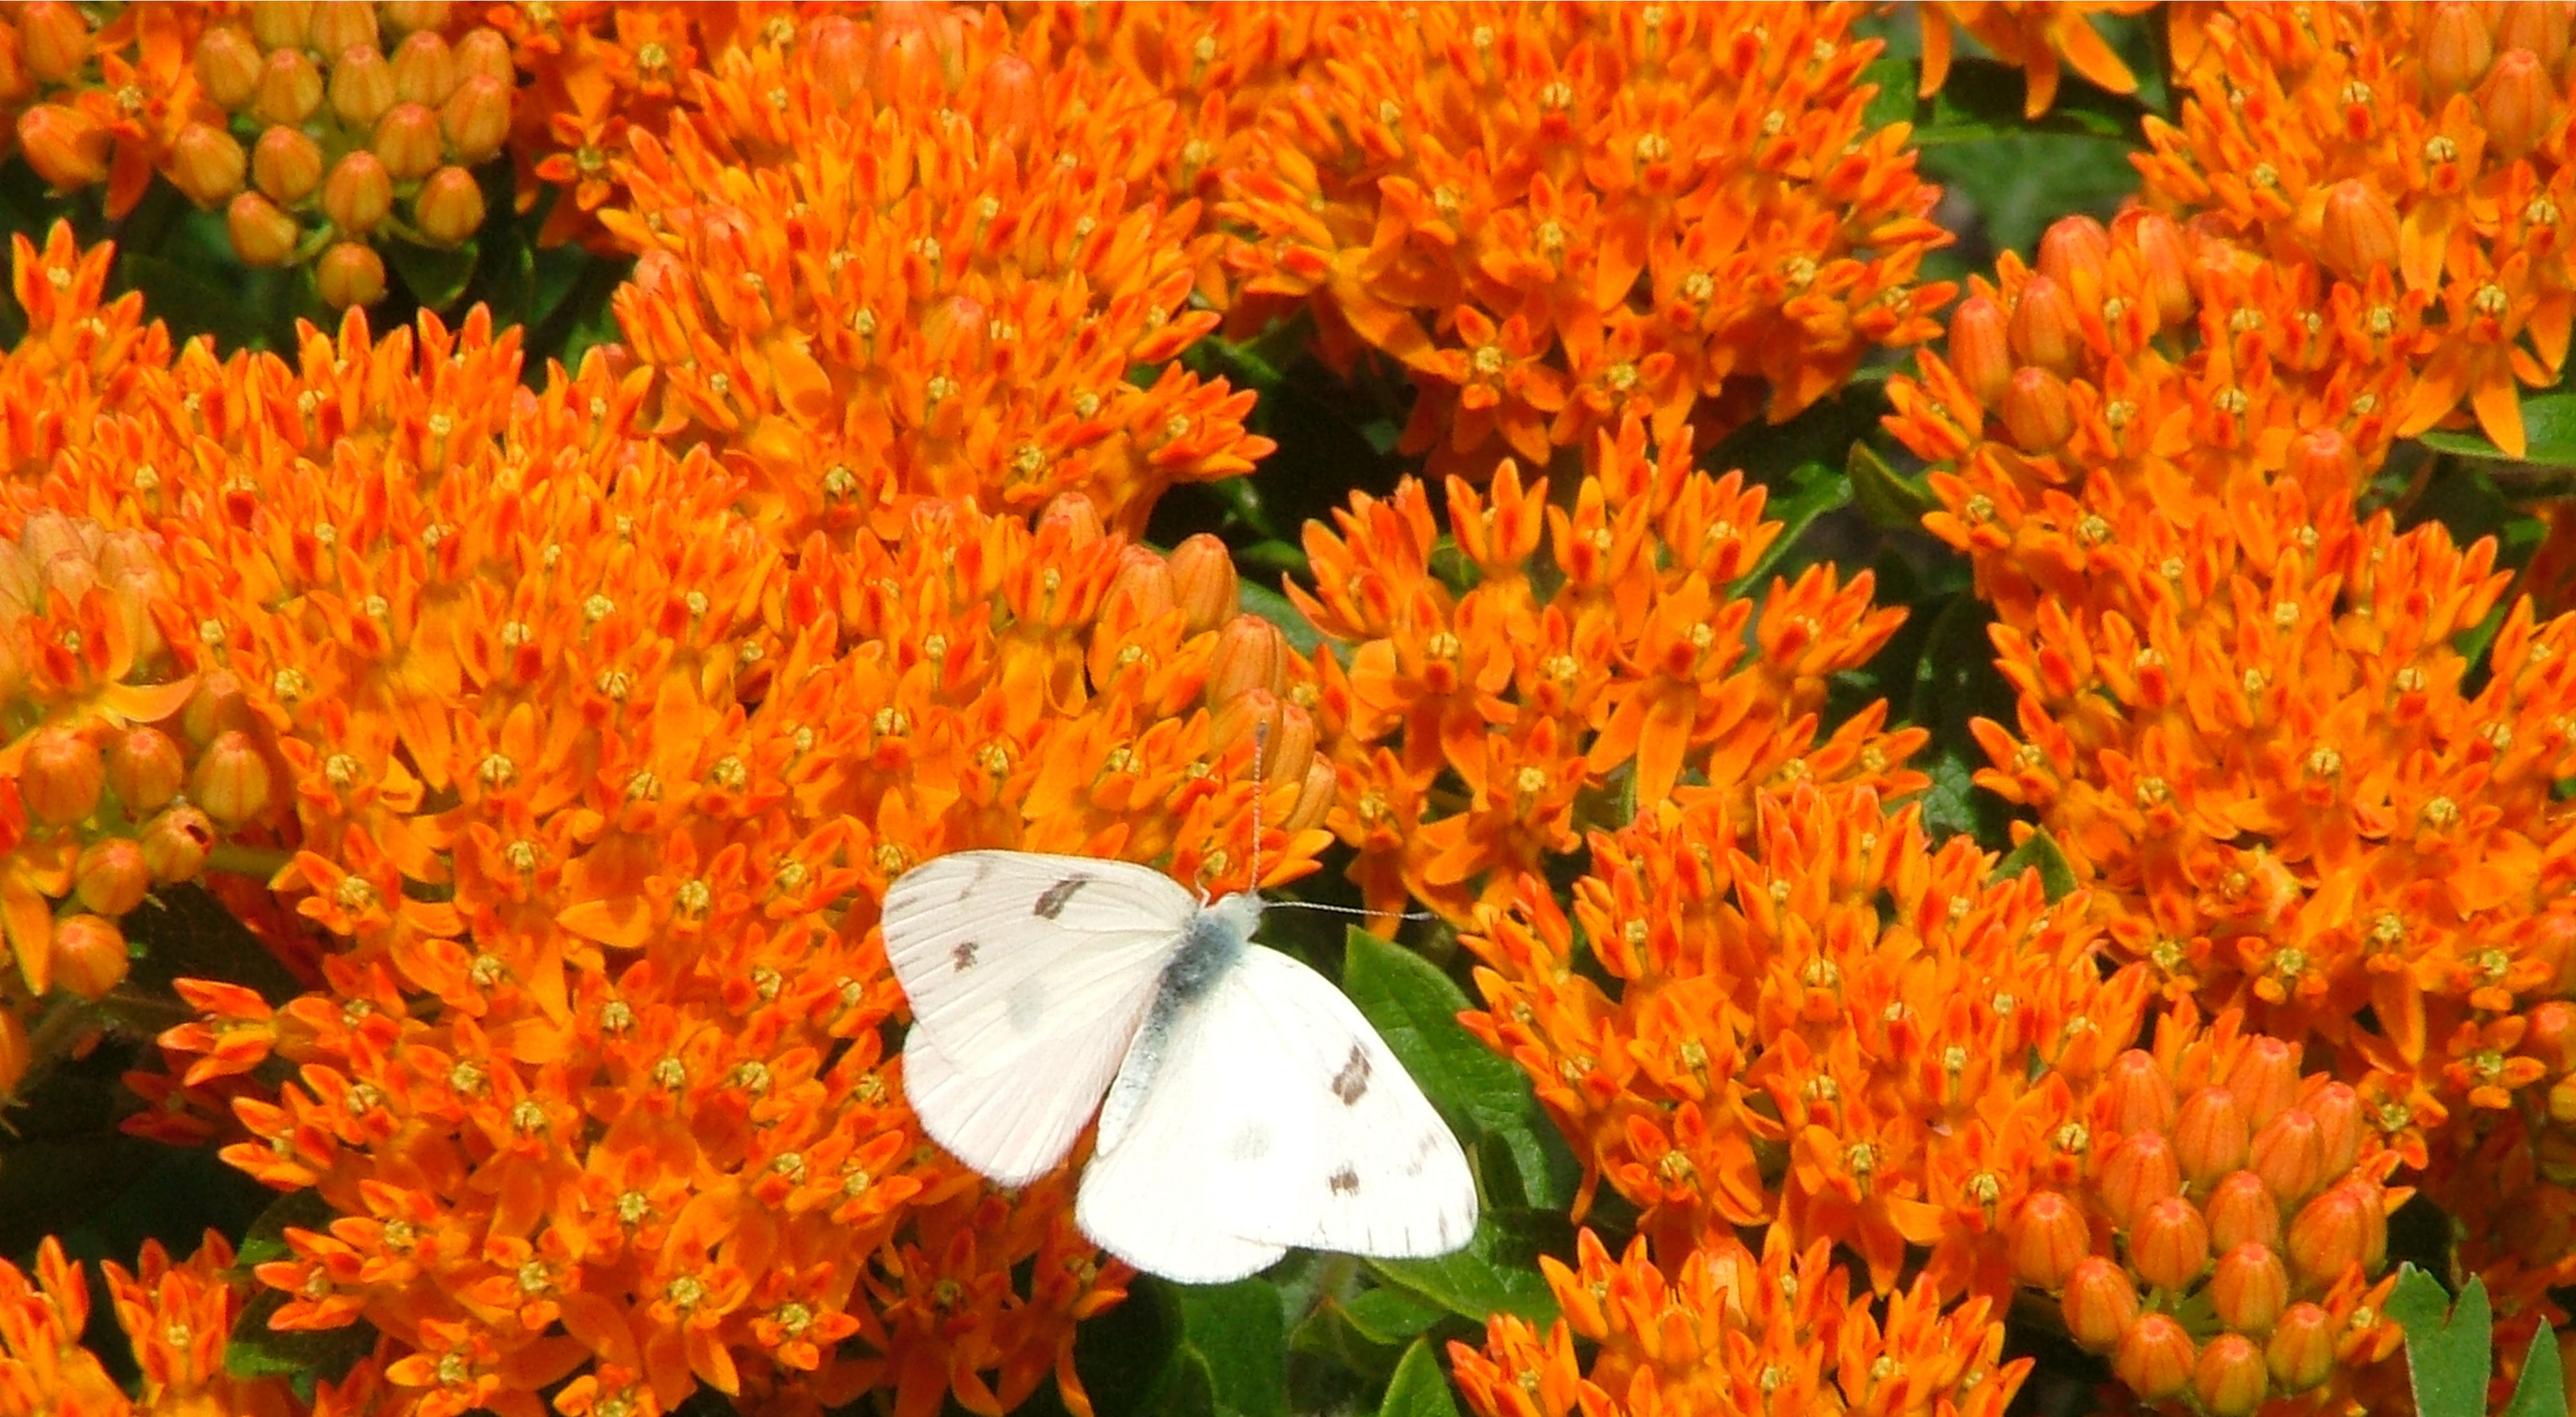 White-checkered butterfly on orange flowers